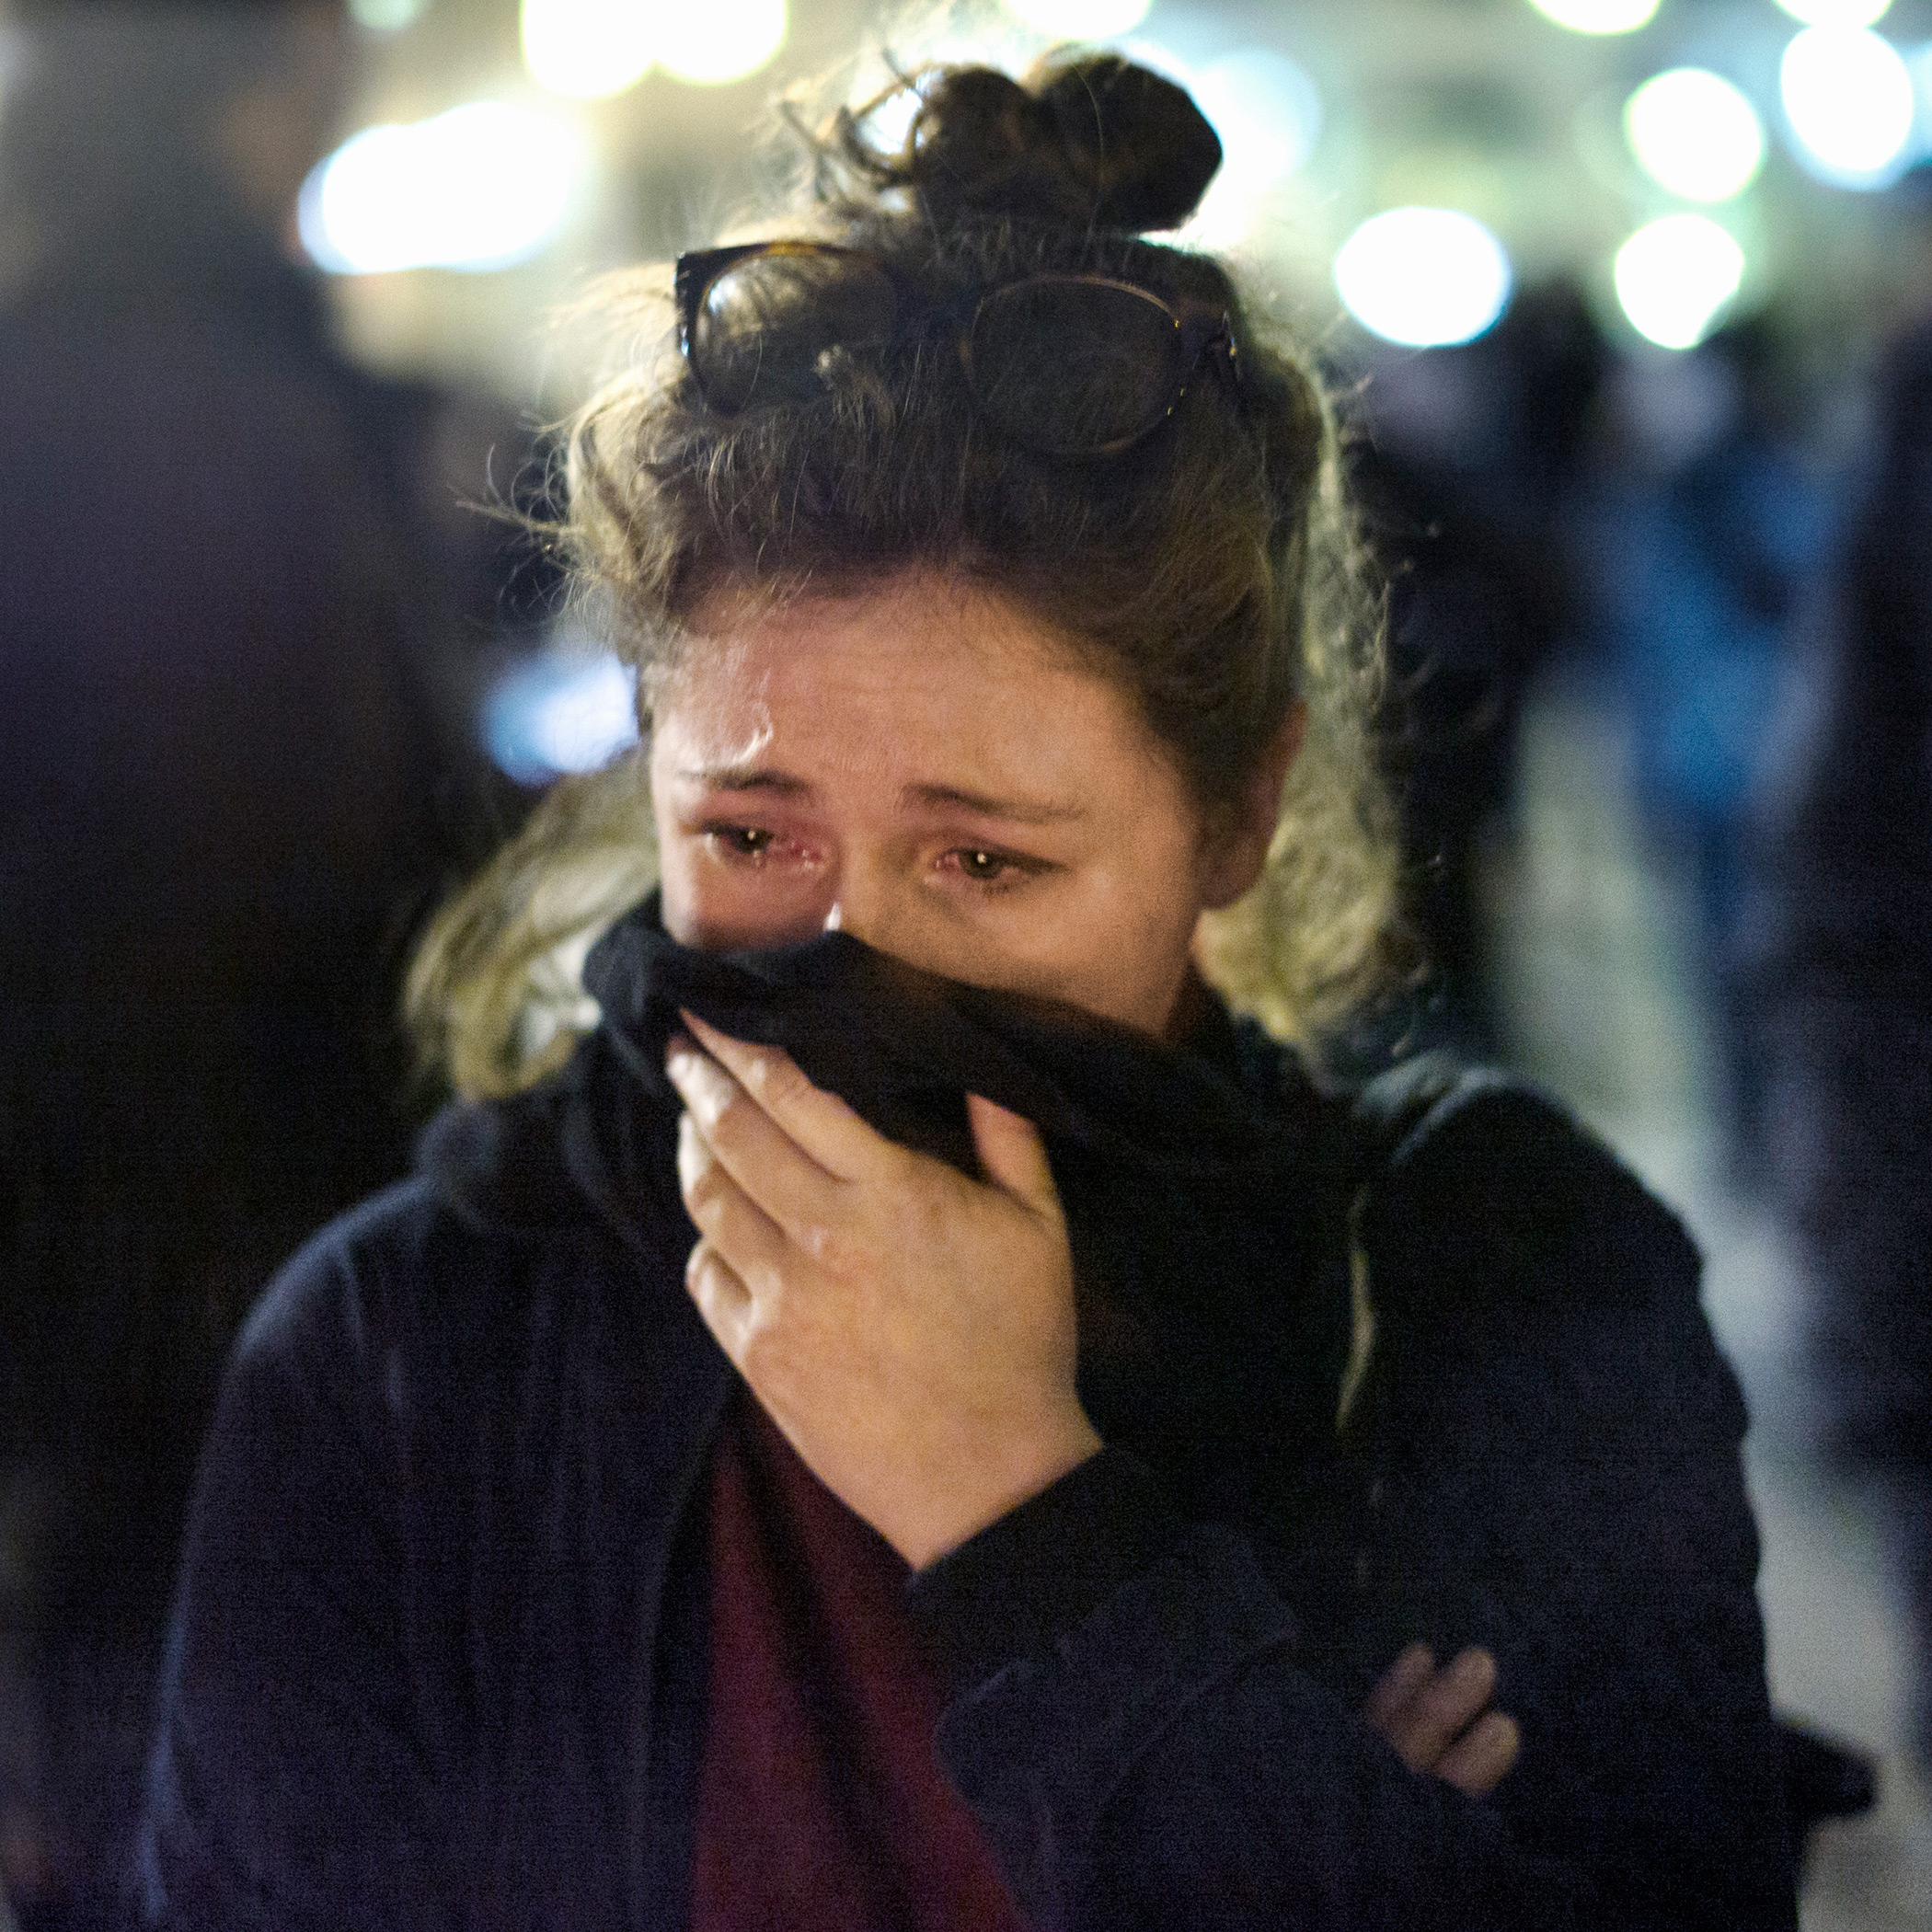 Parisians congregate at a makeshift memorial at Place de la Republique to mourn the victims of the terrorist attacks that stroke France capital city on the night of November 13, 2015. Paris, Nov. 16, 2015.From  See the Heartbreaking Portraits of Parisians in Mourning